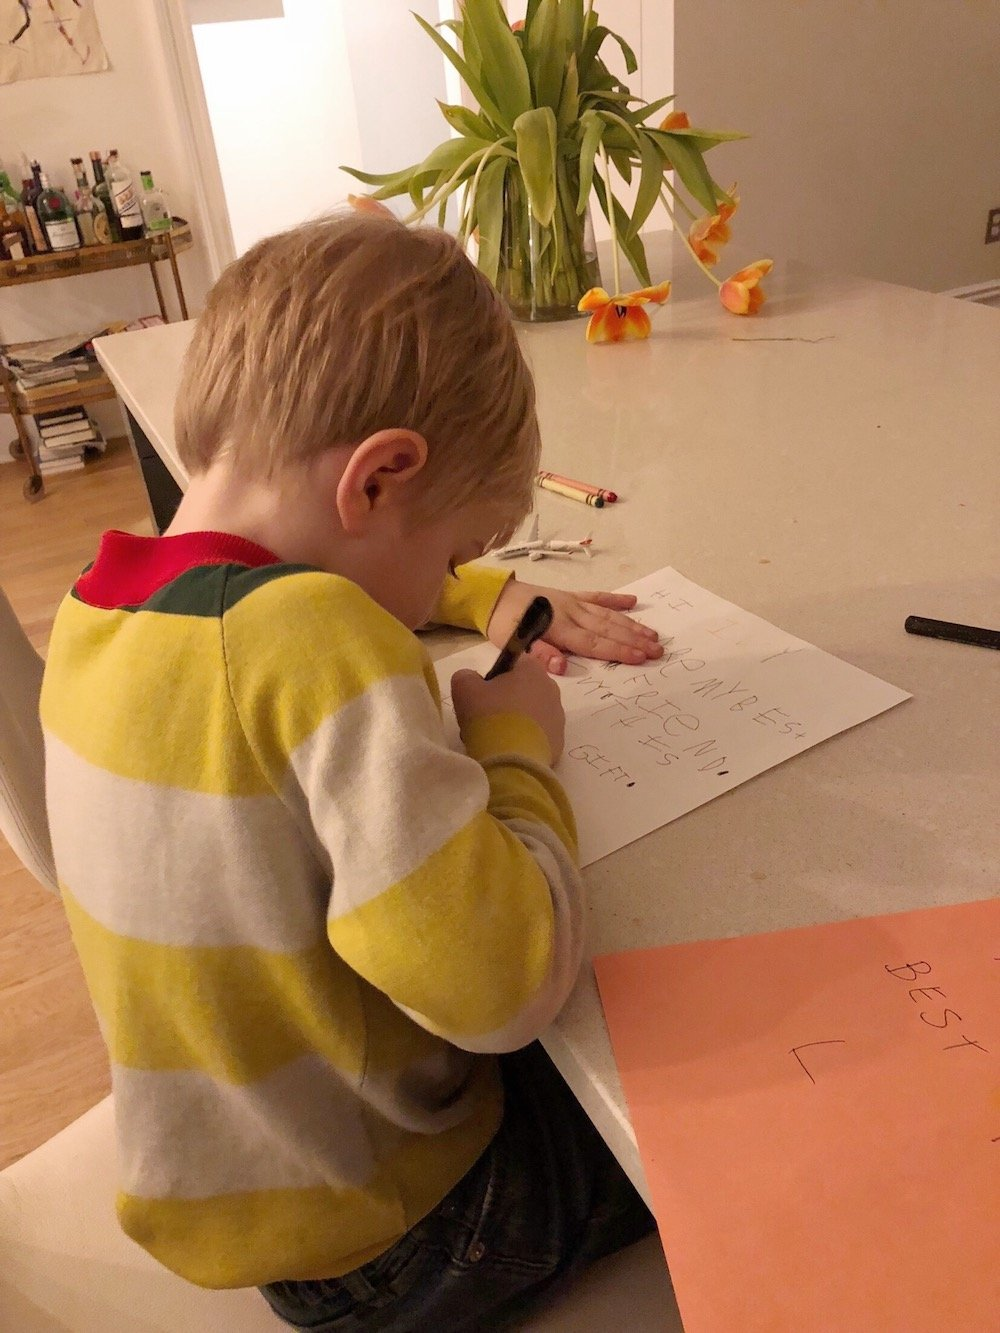 758edf49577a8 This weekend, five-year-old Anton asked me to help him write a note…